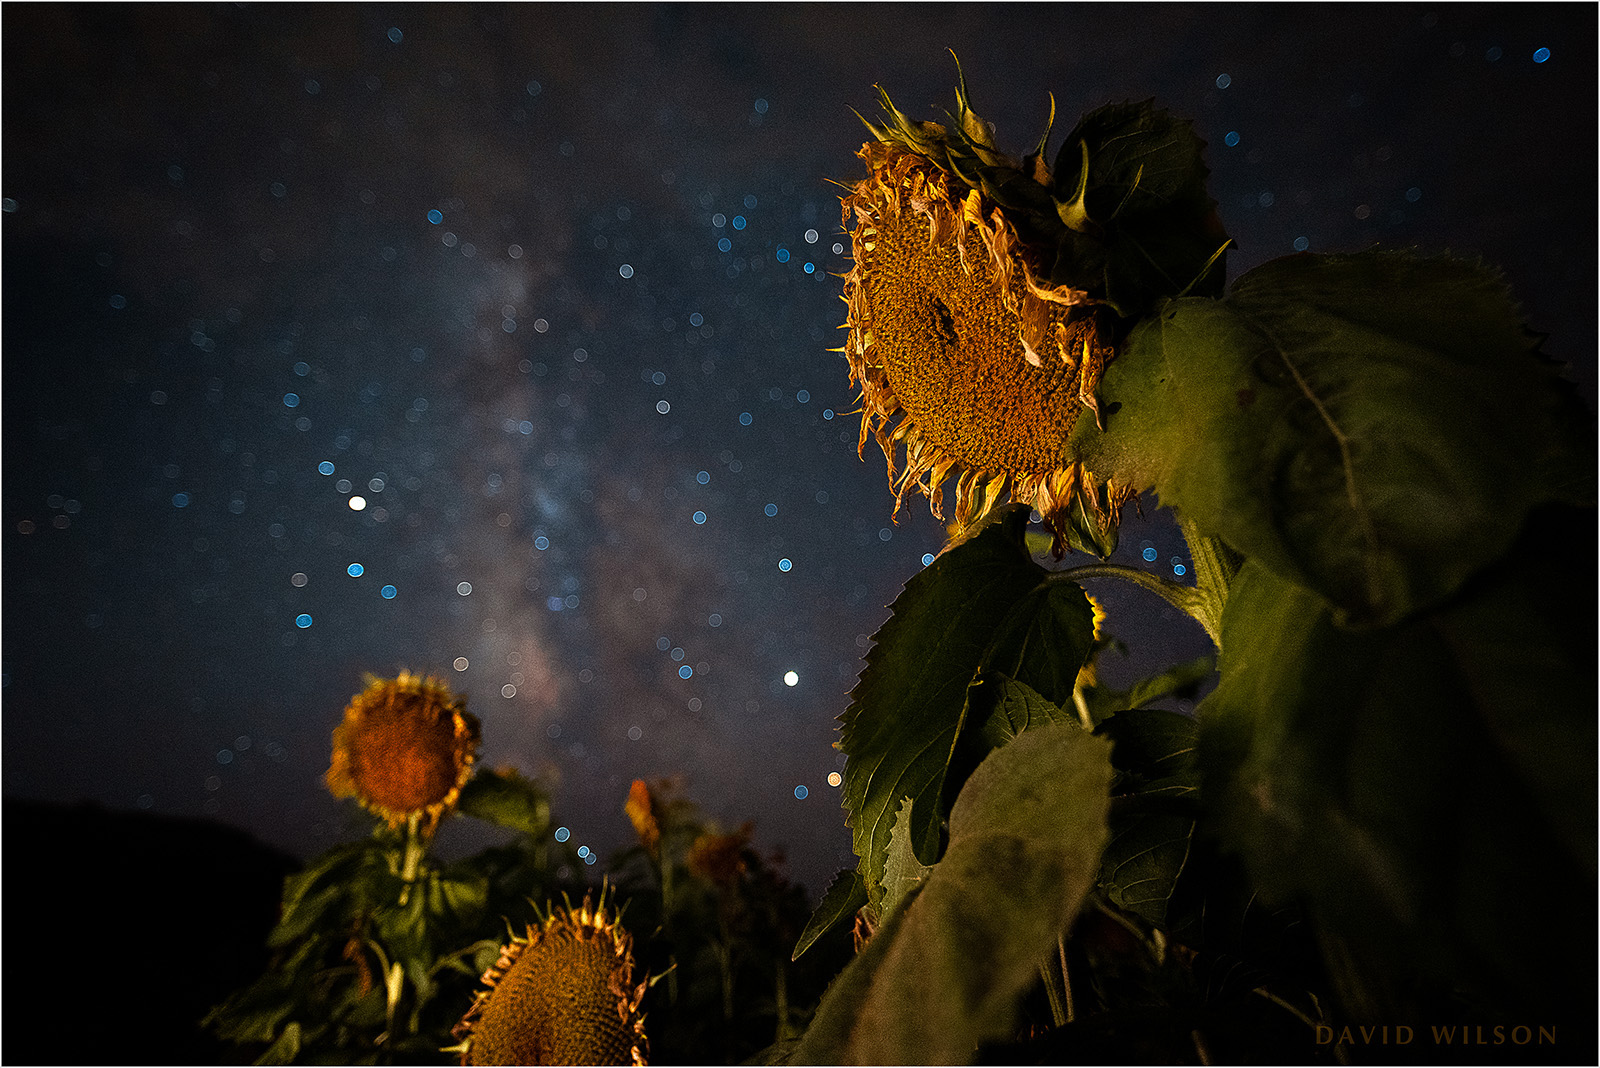 Fading sunflowers stand watch through the night.